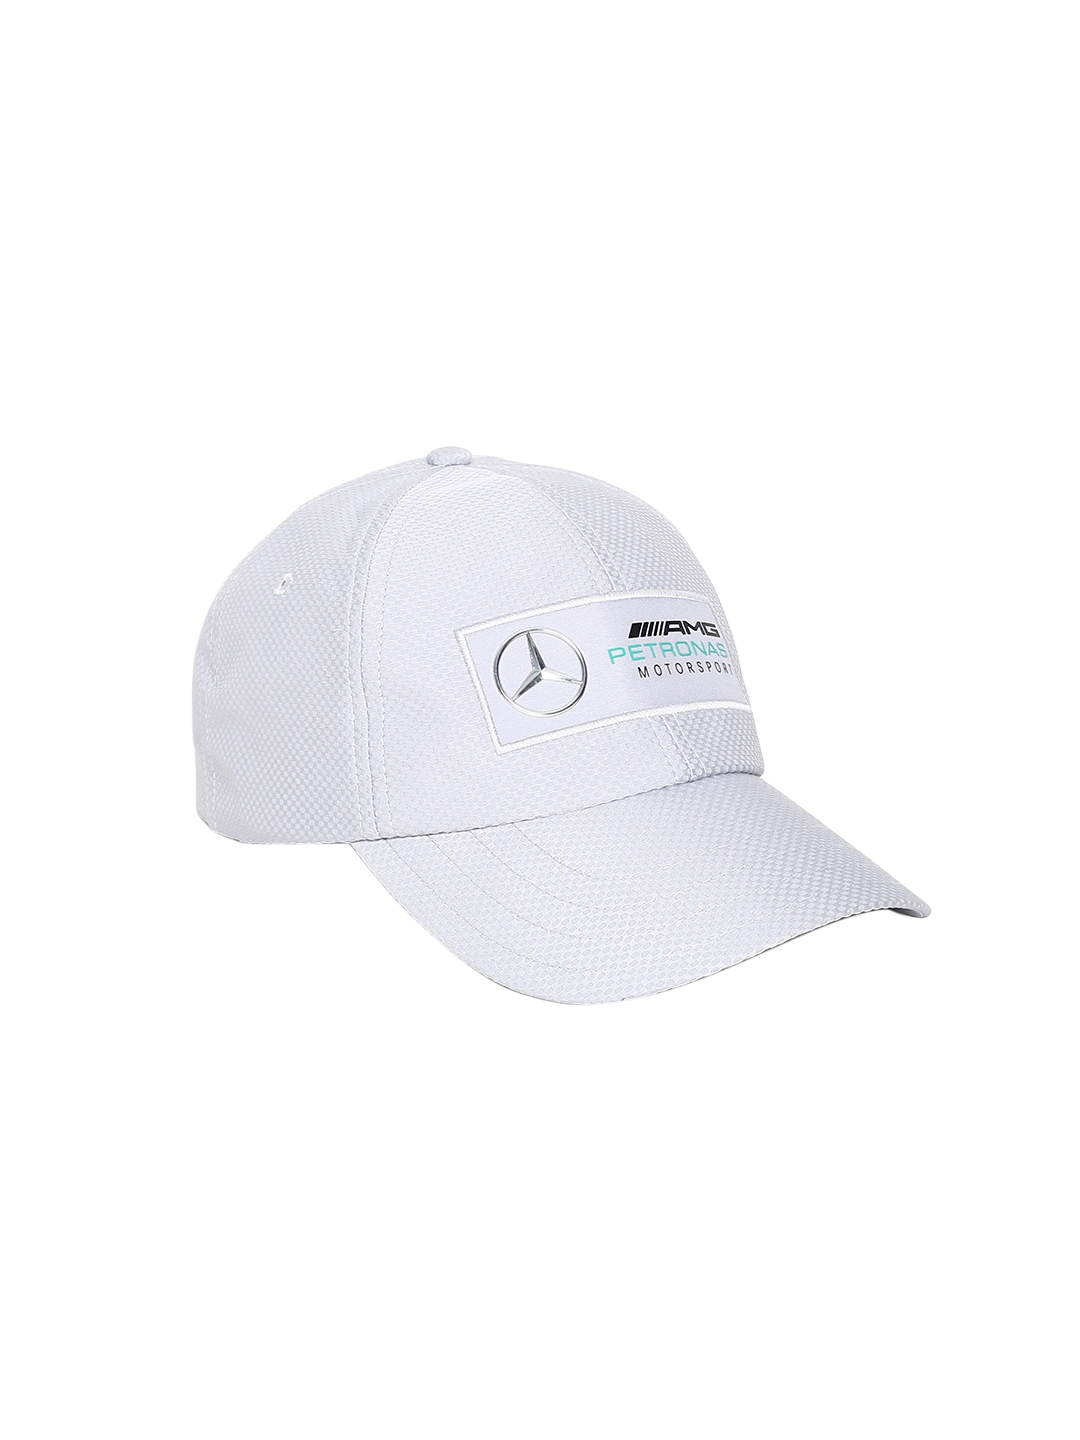 Buy Puma Unisex Silver Toned Solid Baseball Cap - Caps for Unisex ... 7f855fdeb034